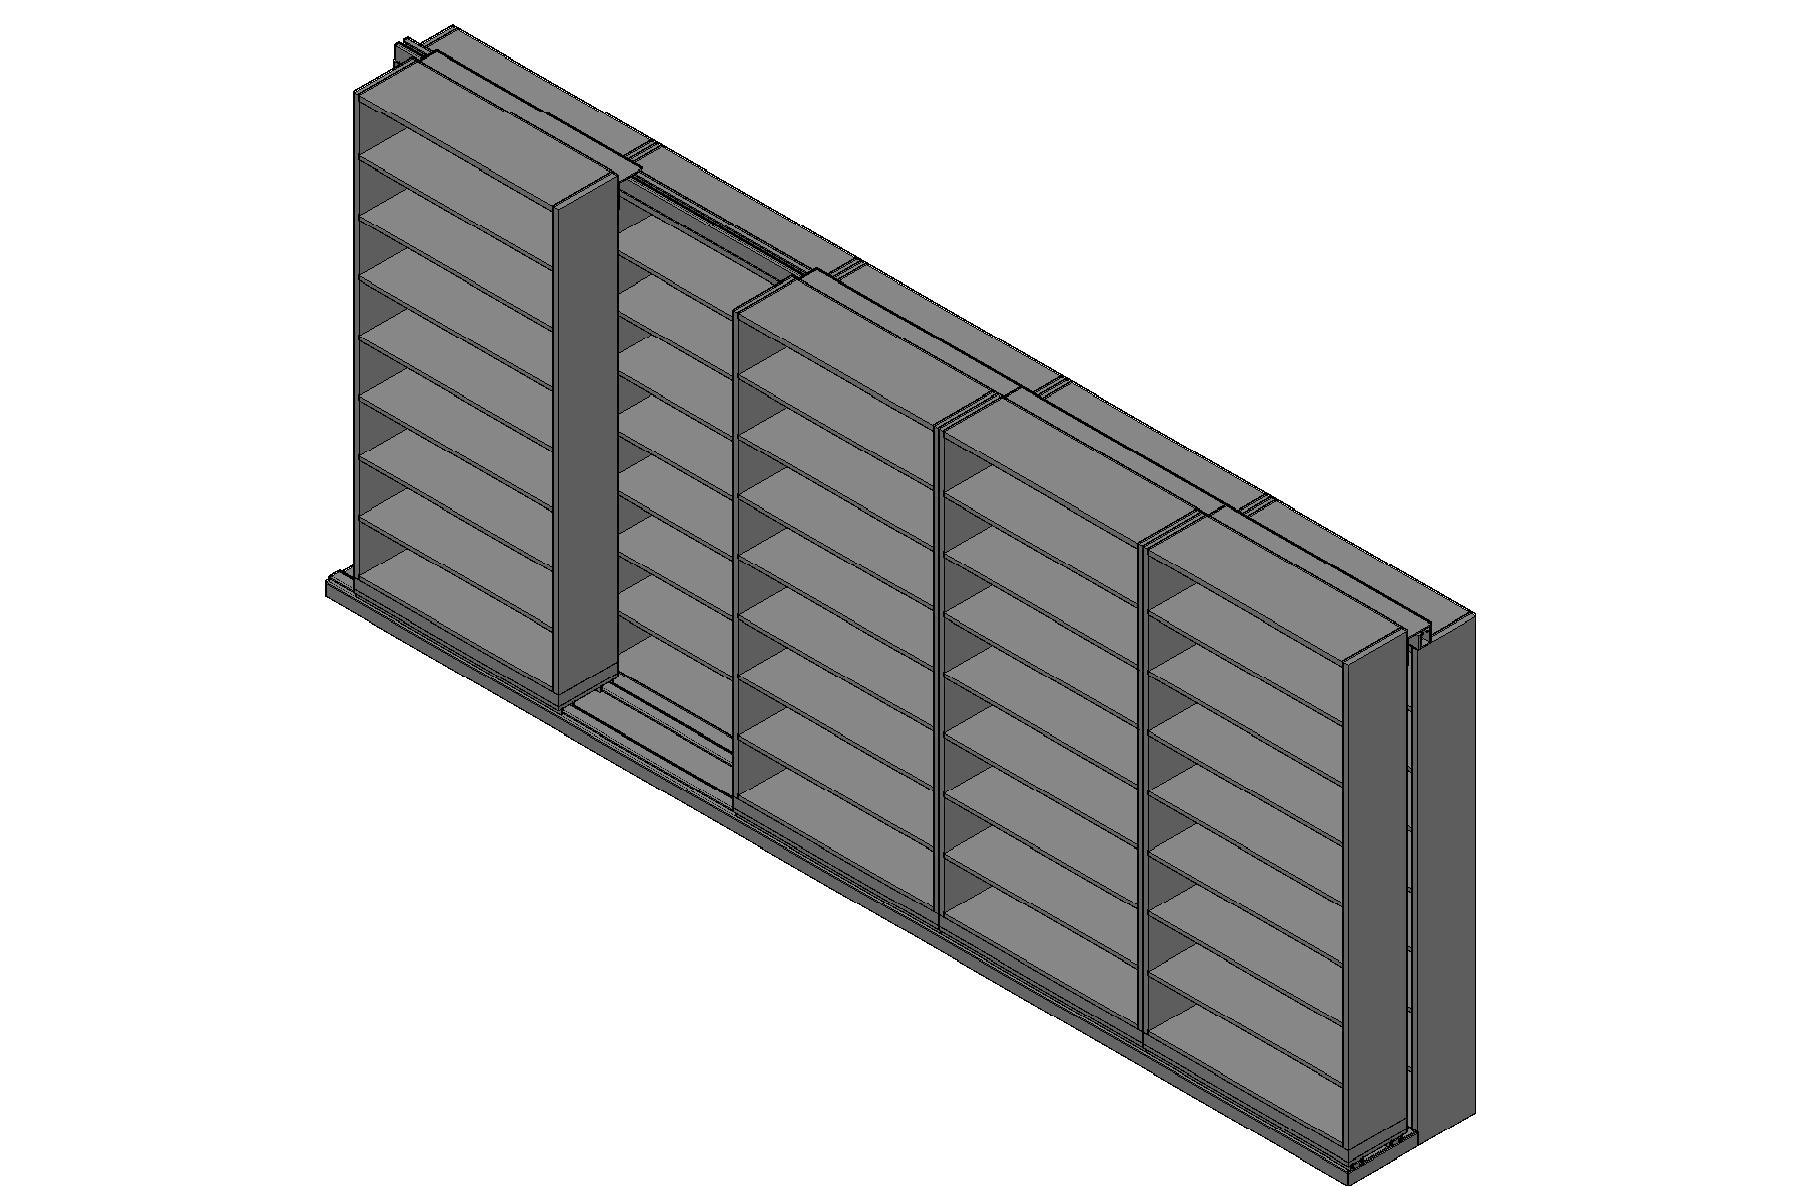 "Letter Size Sliding Shelves - 2 Rows Deep - 8 Levels - (42"" x 12"" Shelves) - 214"" Total Width"